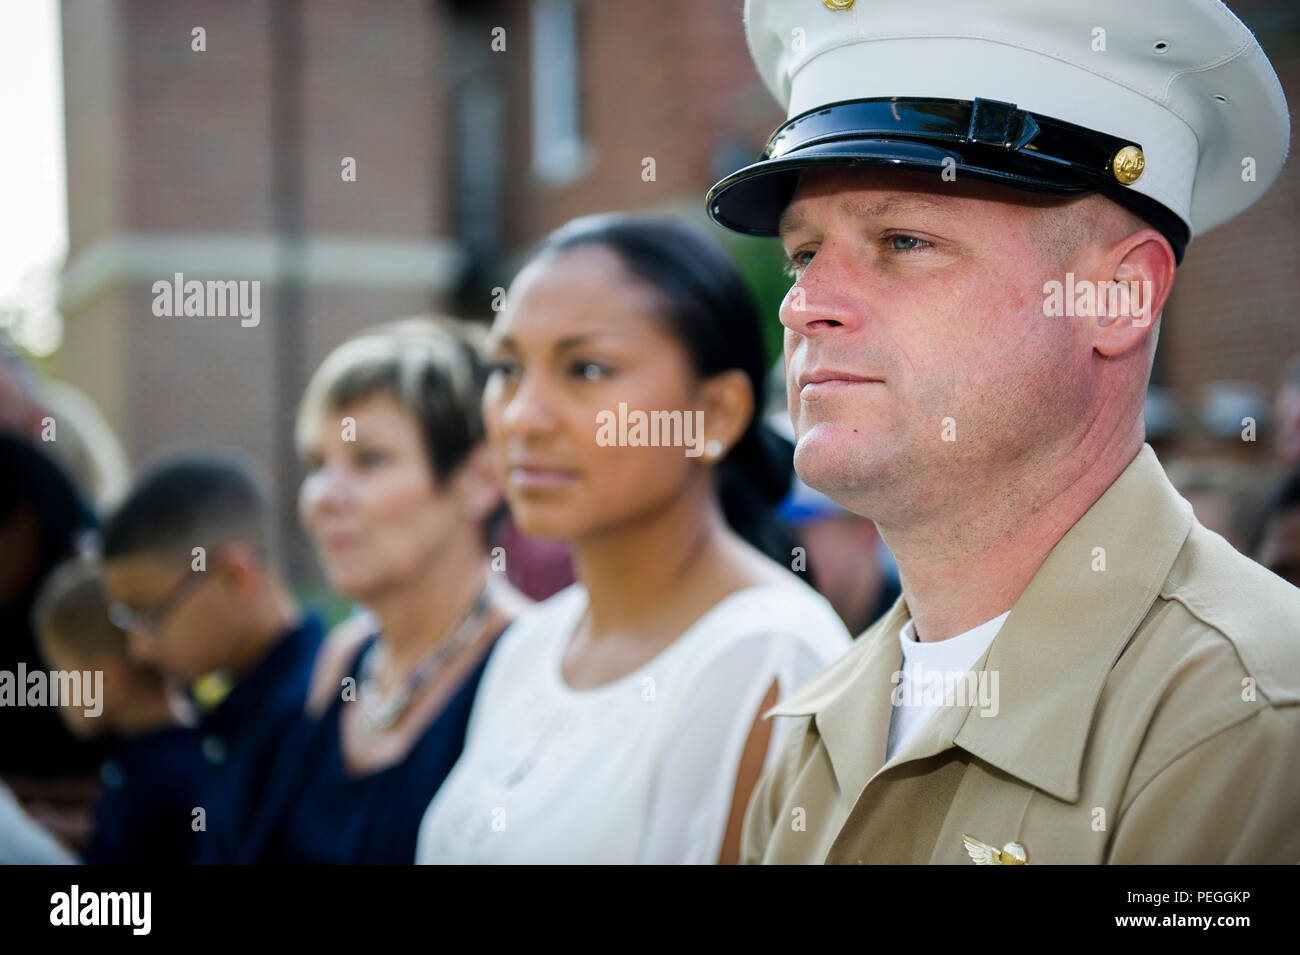 af9868c7e01 U.S. Marine Corps 1st Sgt. Joseph Meredith is honored during a retirement  ceremony held Marine